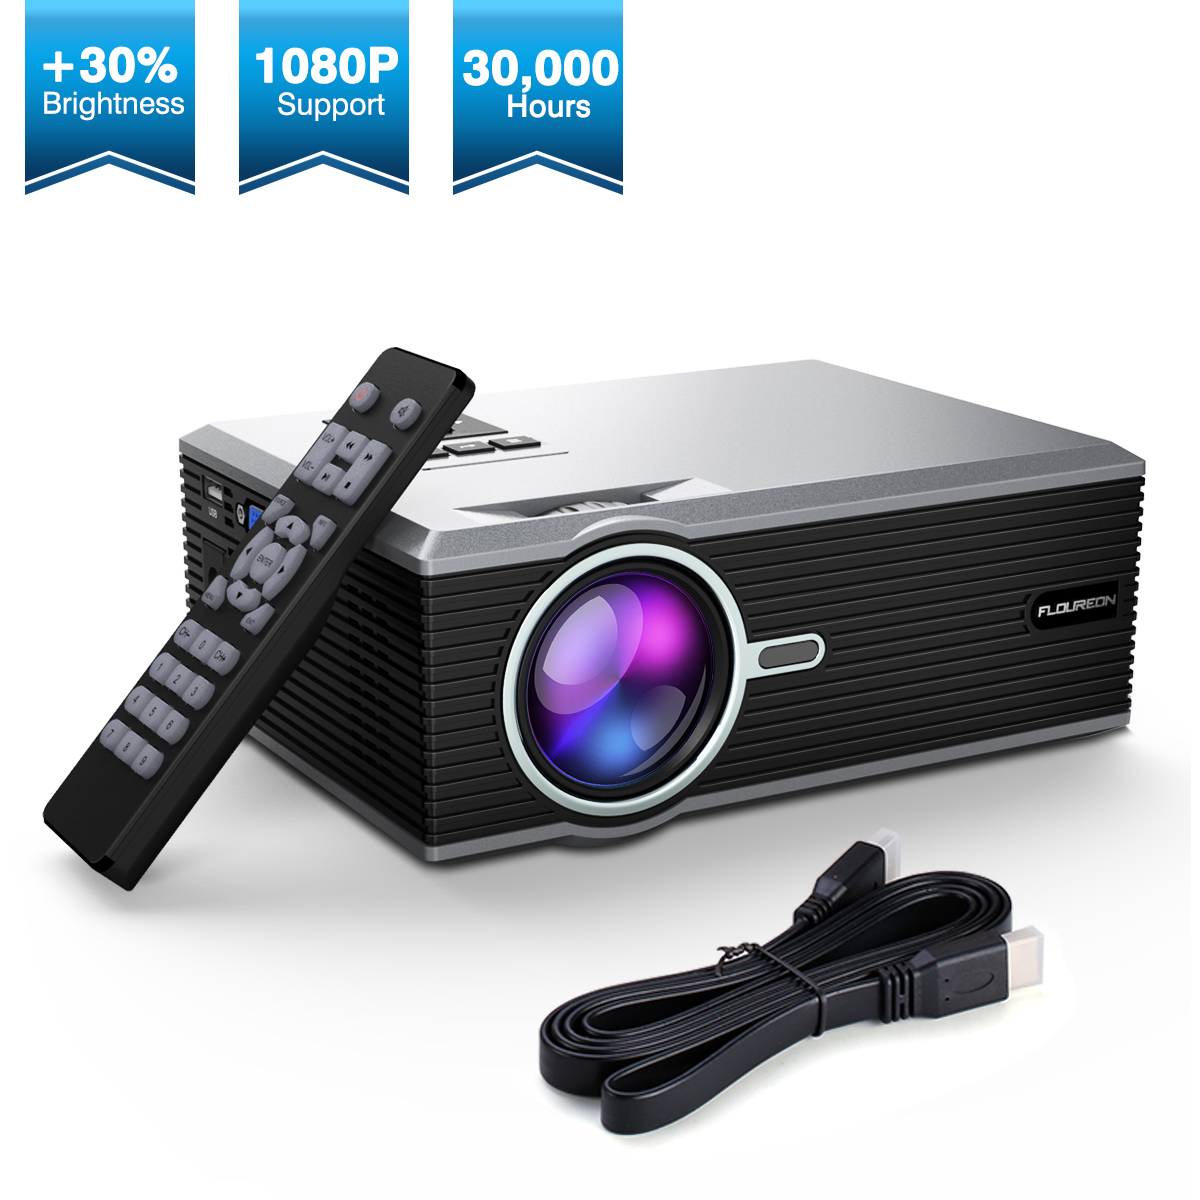 FLOUREON Portable Video LCD Projector 30% Upgraded Brightness Support HD 1080P For Home Outdoor Entertainment Connect With Phone DVD Player PS4 PC XBOX Amazon Fire TV Stick SD HDMI Cable Available